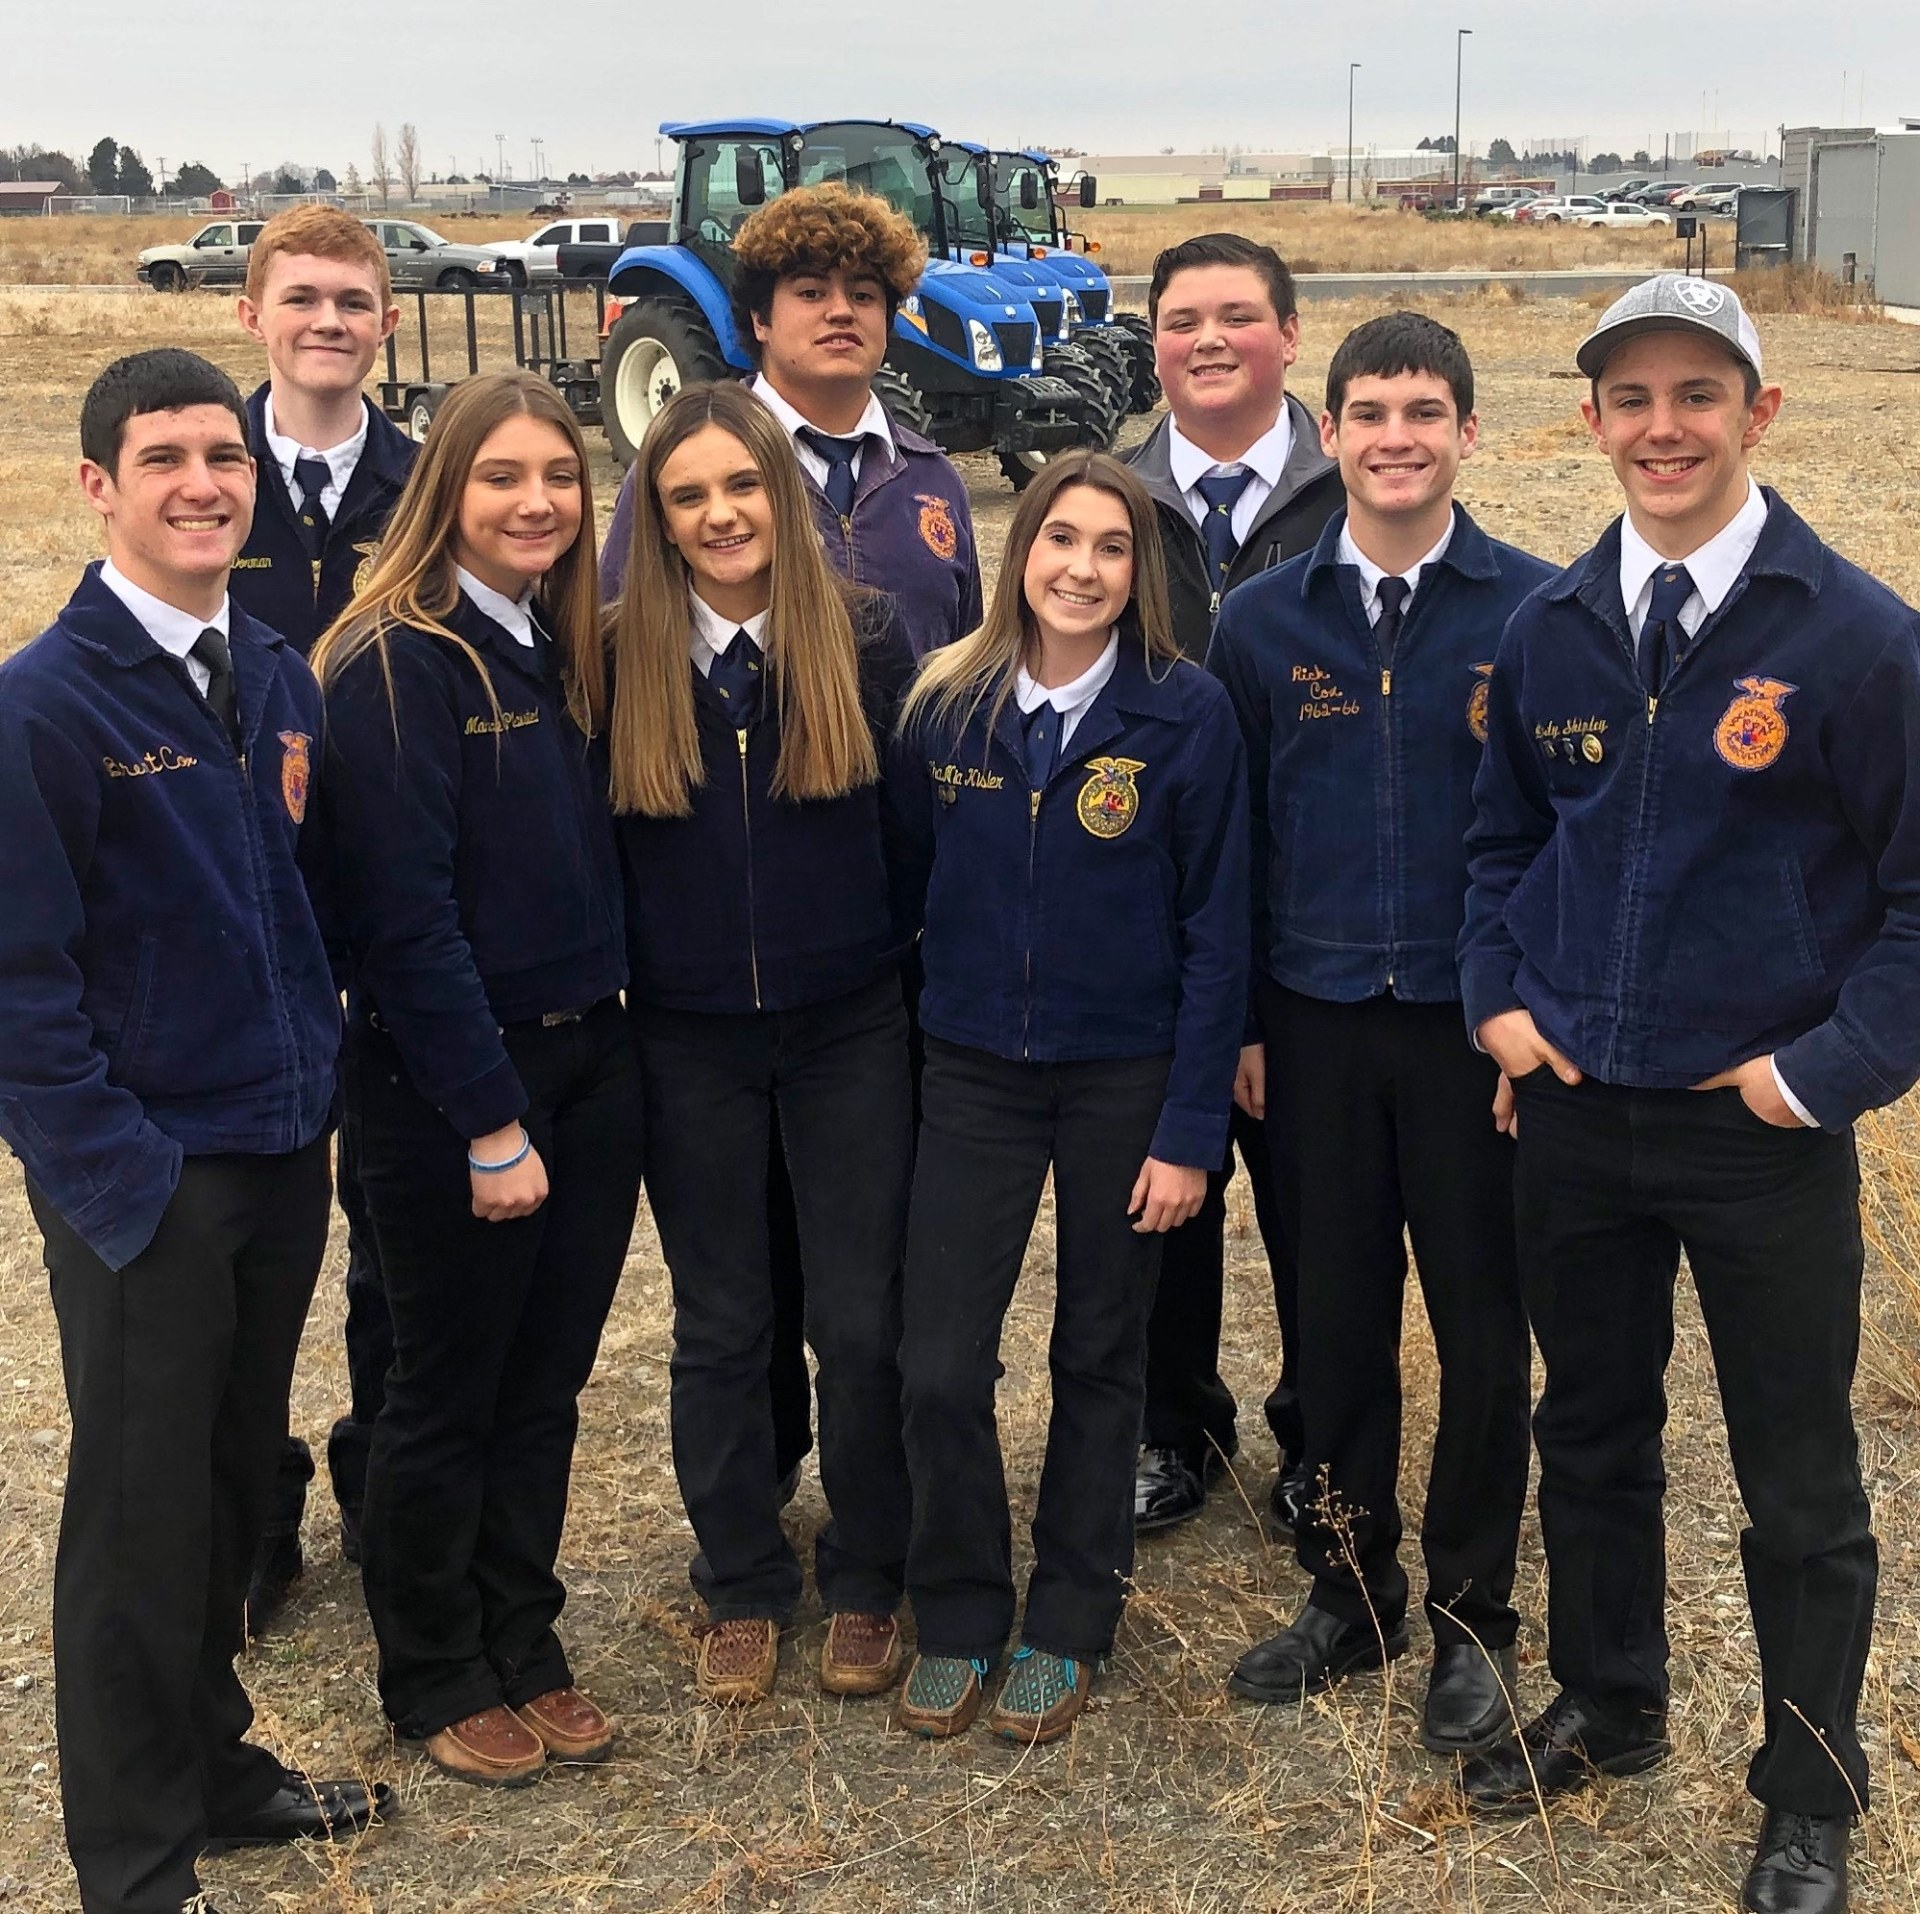 FFA Potato Evaluation team, State Potato Career Development Event